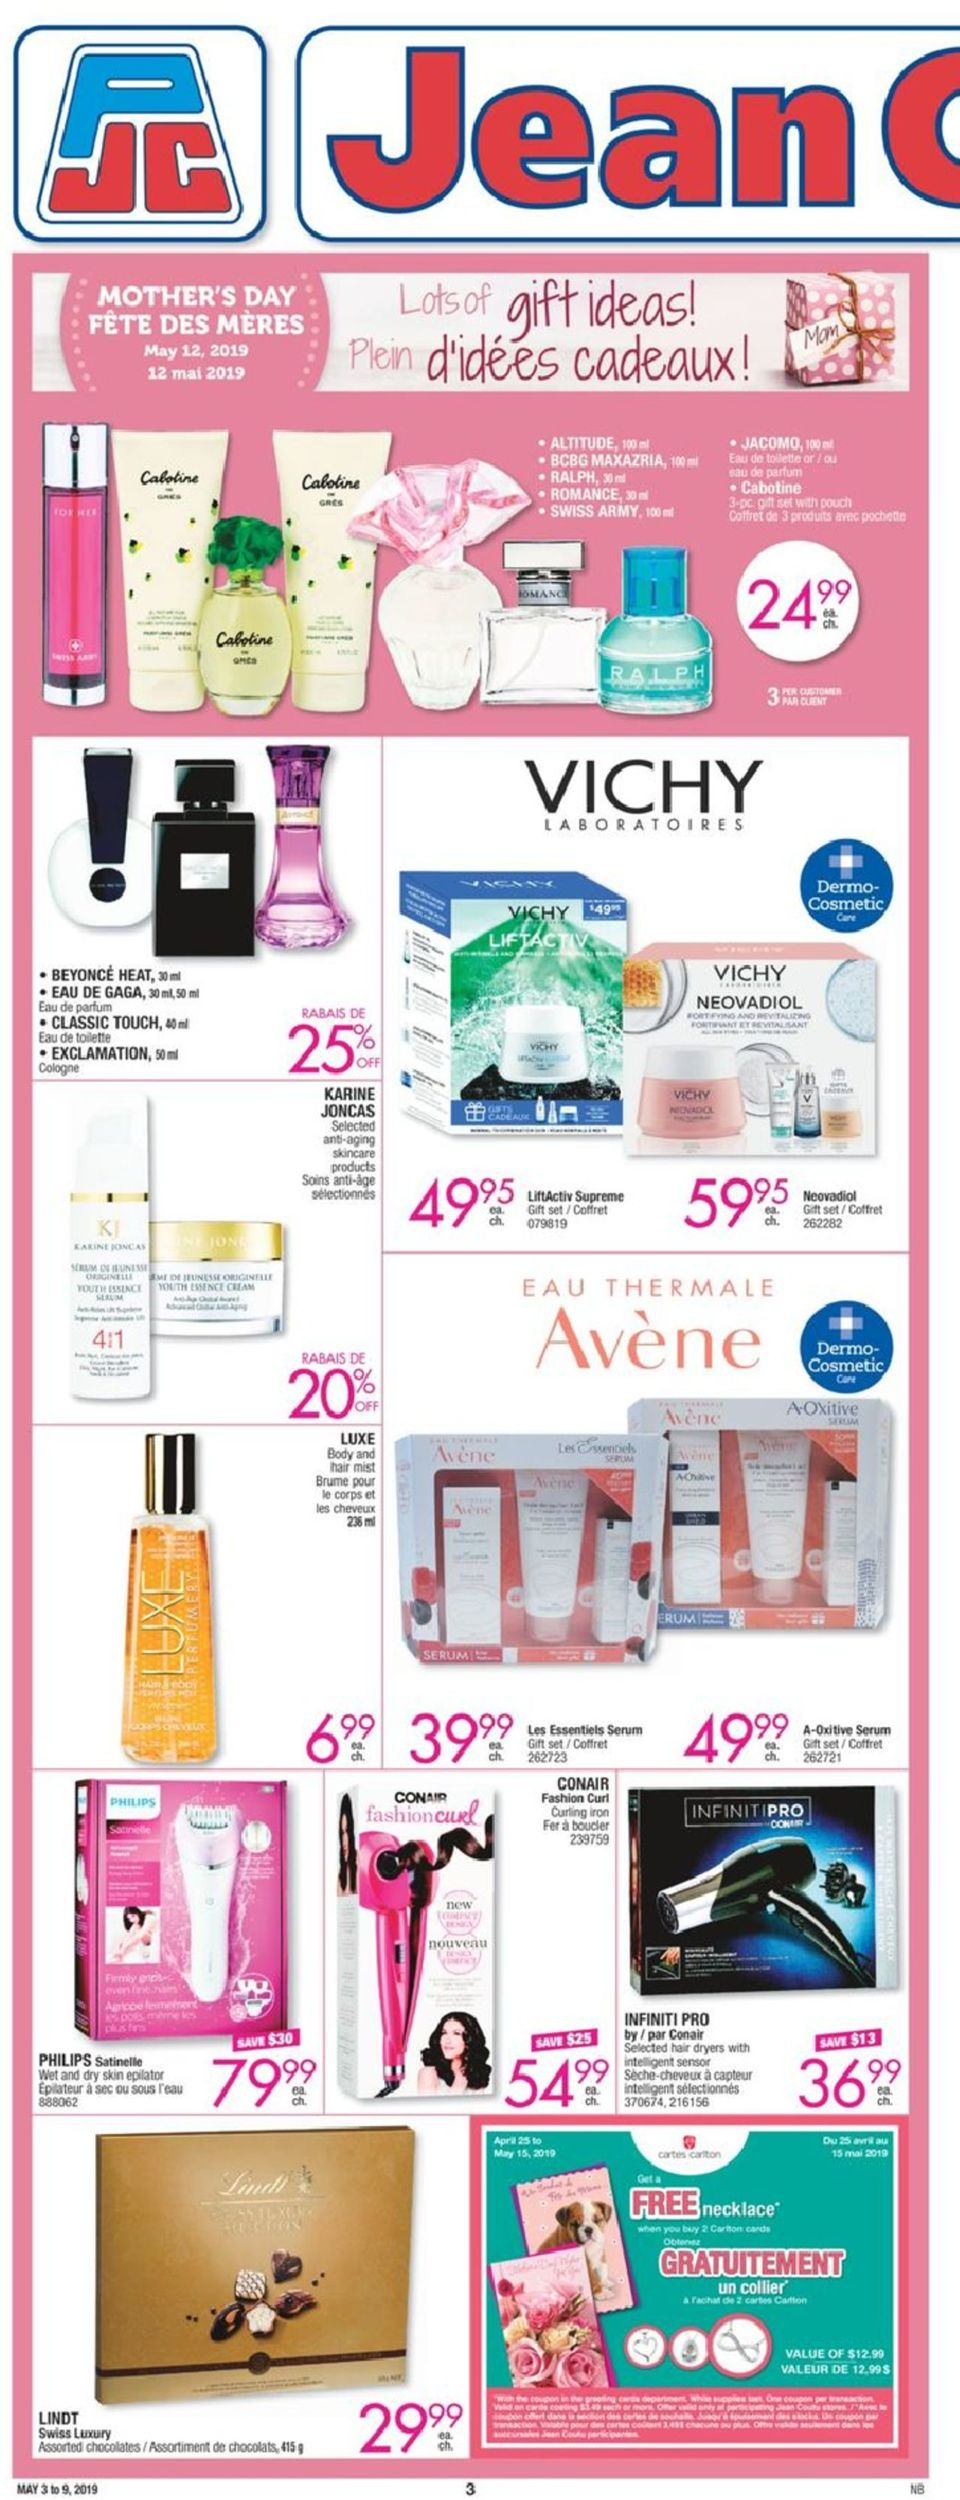 Jean Coutu Flyer - 05/03-05/09/2019 (Page 2)